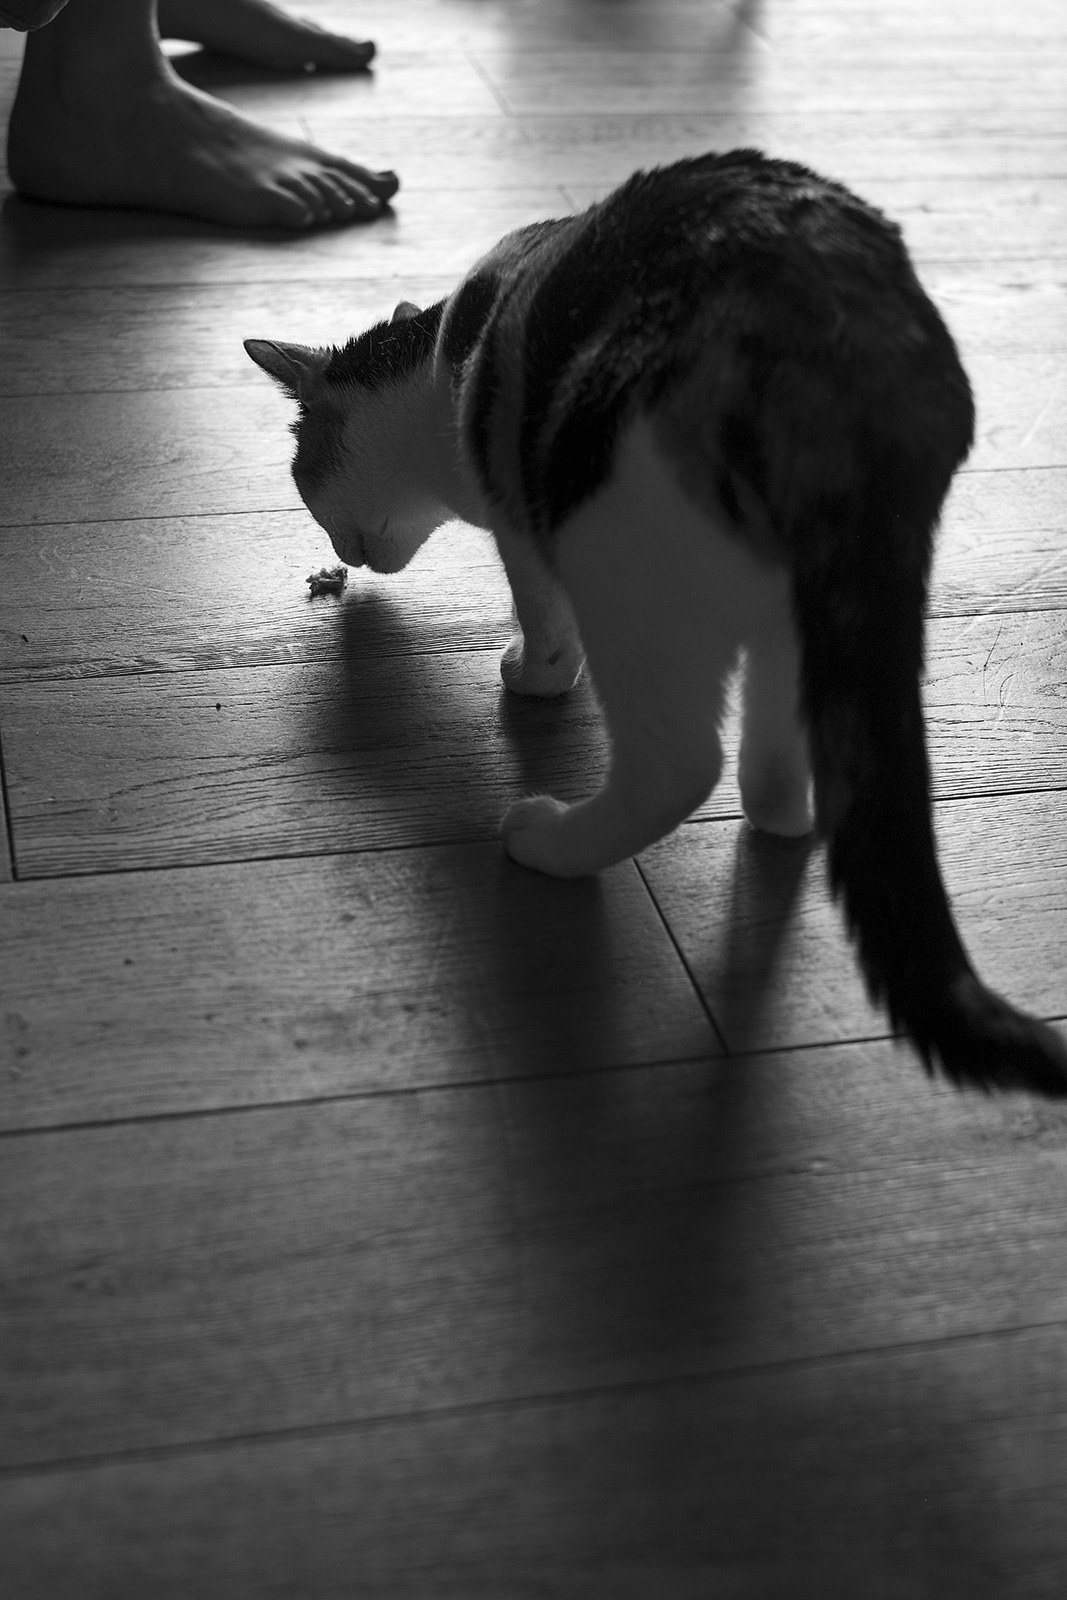 Black and white cat sniffing at food on wooden floor black and white portrait photograph P. Maton 2019 eyeteeth.net